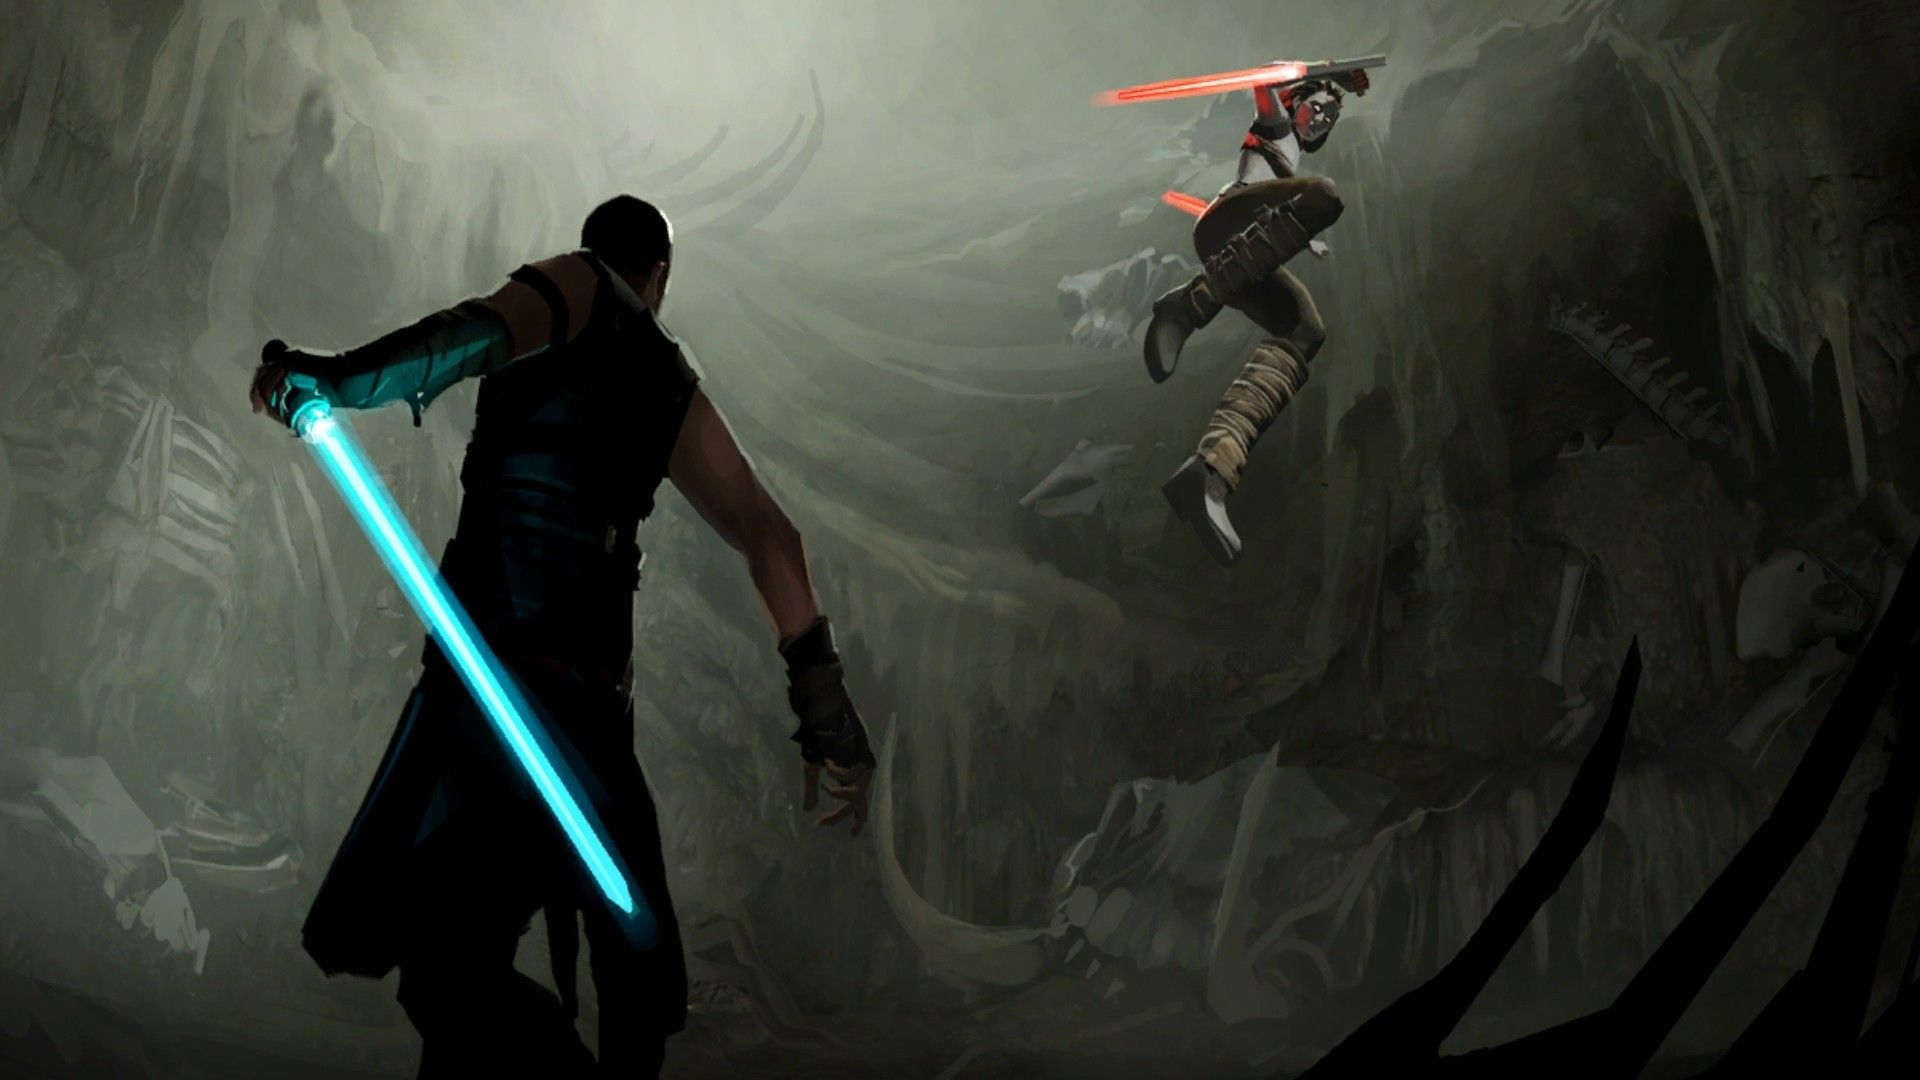 30 Adorable Star Wars The Force Unleashed Wallpapers In High Quality Berthe Mcmichael